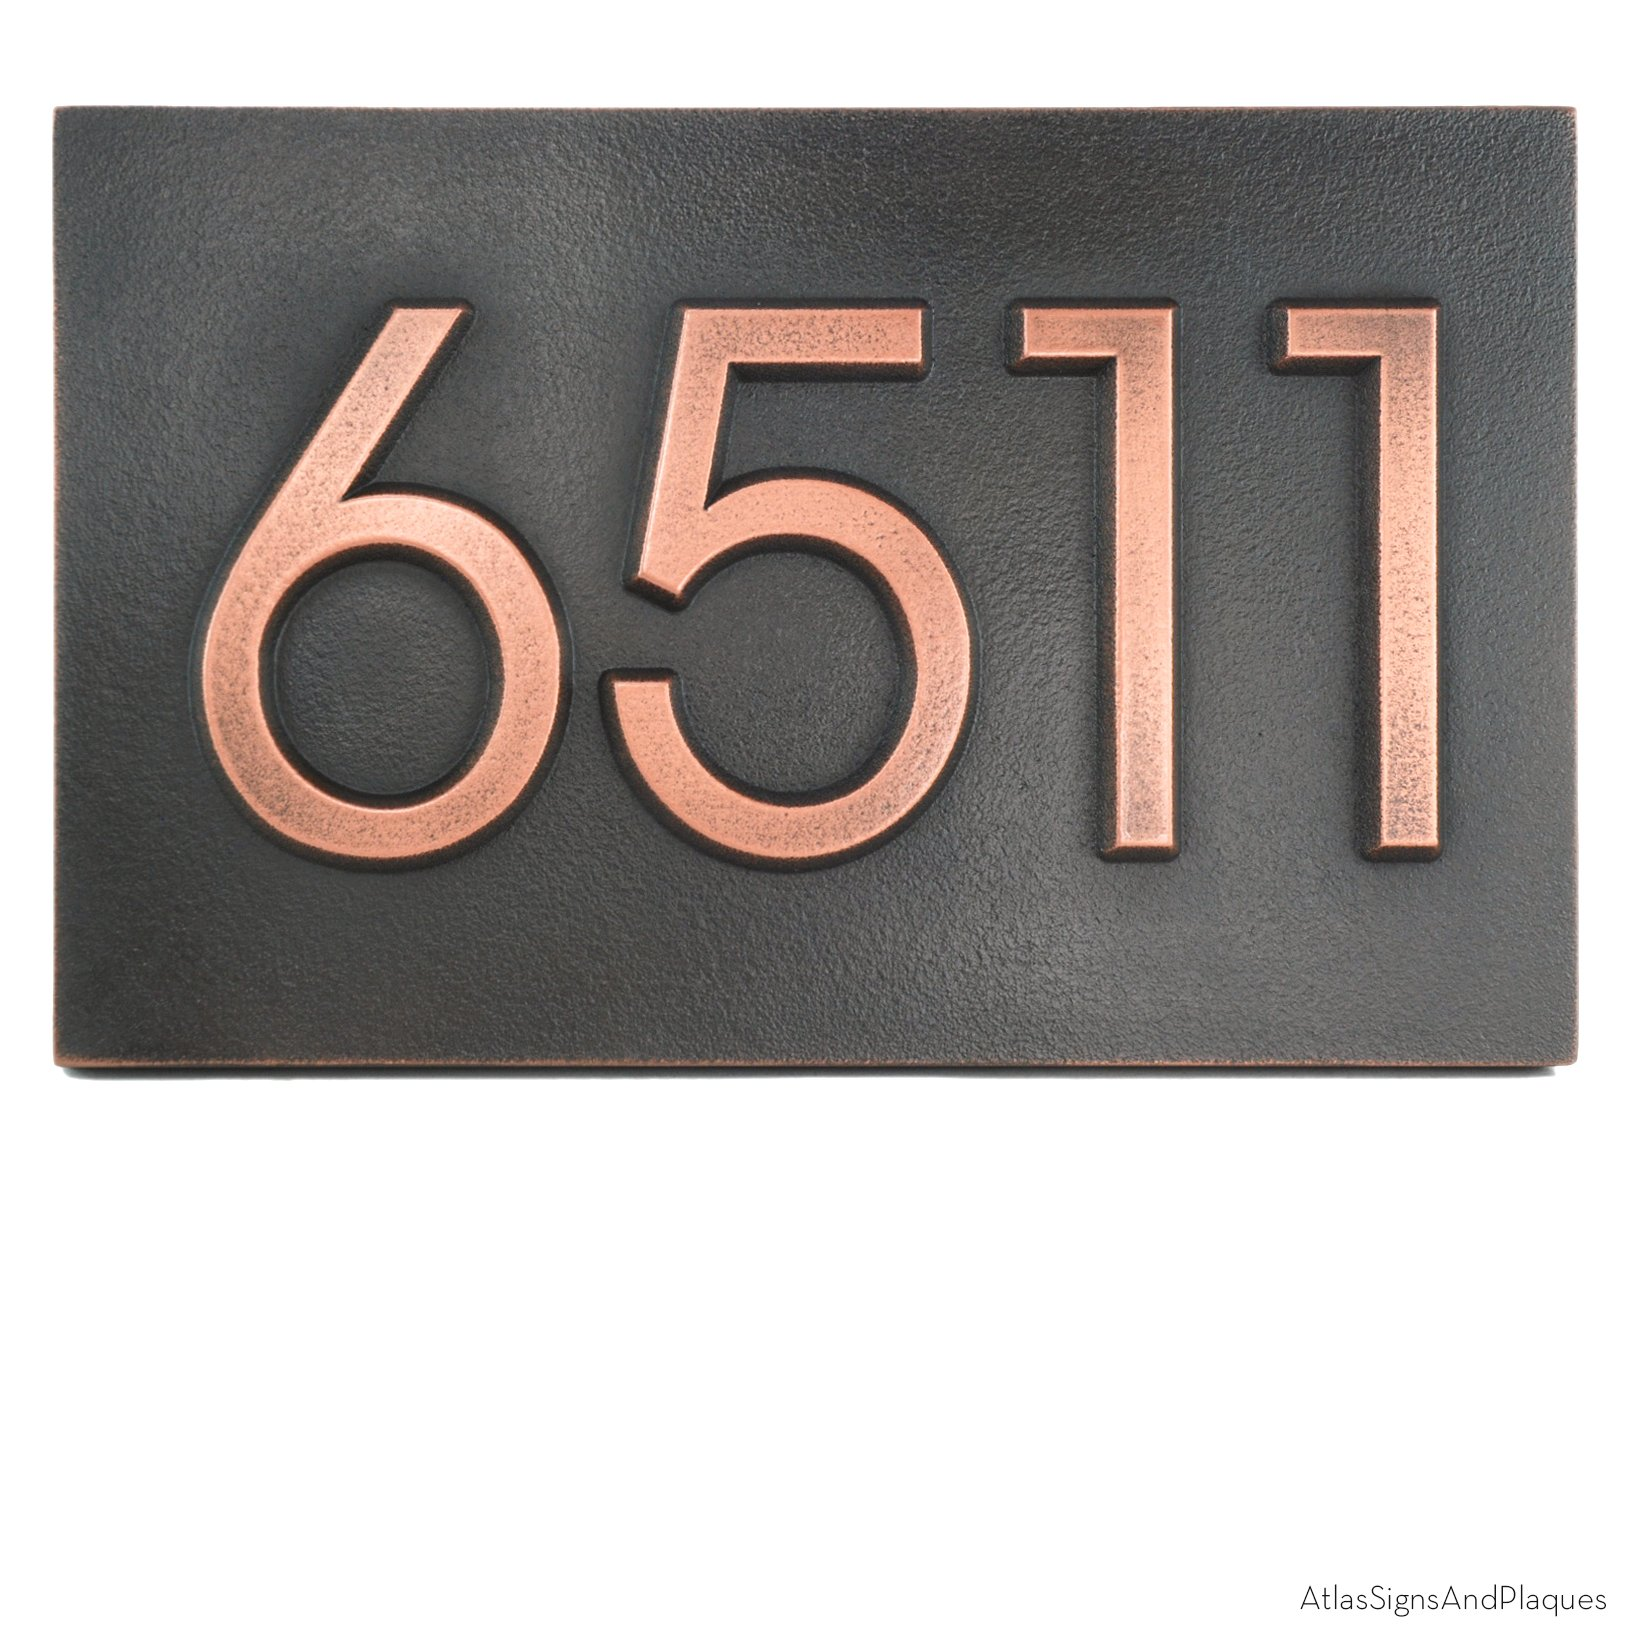 Modern Advantage Address Number Plaque 13x8 - Raised Copper Metal Coated by Atlas Signs and Plaques